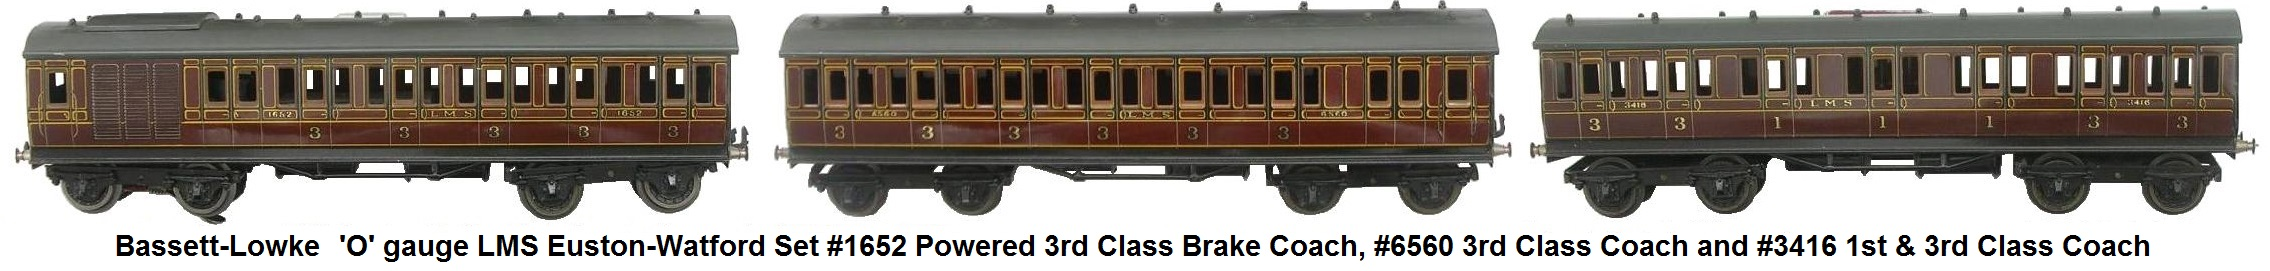 Bassett-Lowke 'O' gauge 12 Volt DC electric LMS Euston-Watford Set powered 3rd class brake coach #1652, 3rd class coach 12 #6560, and 1st and 3rd class coach #3416